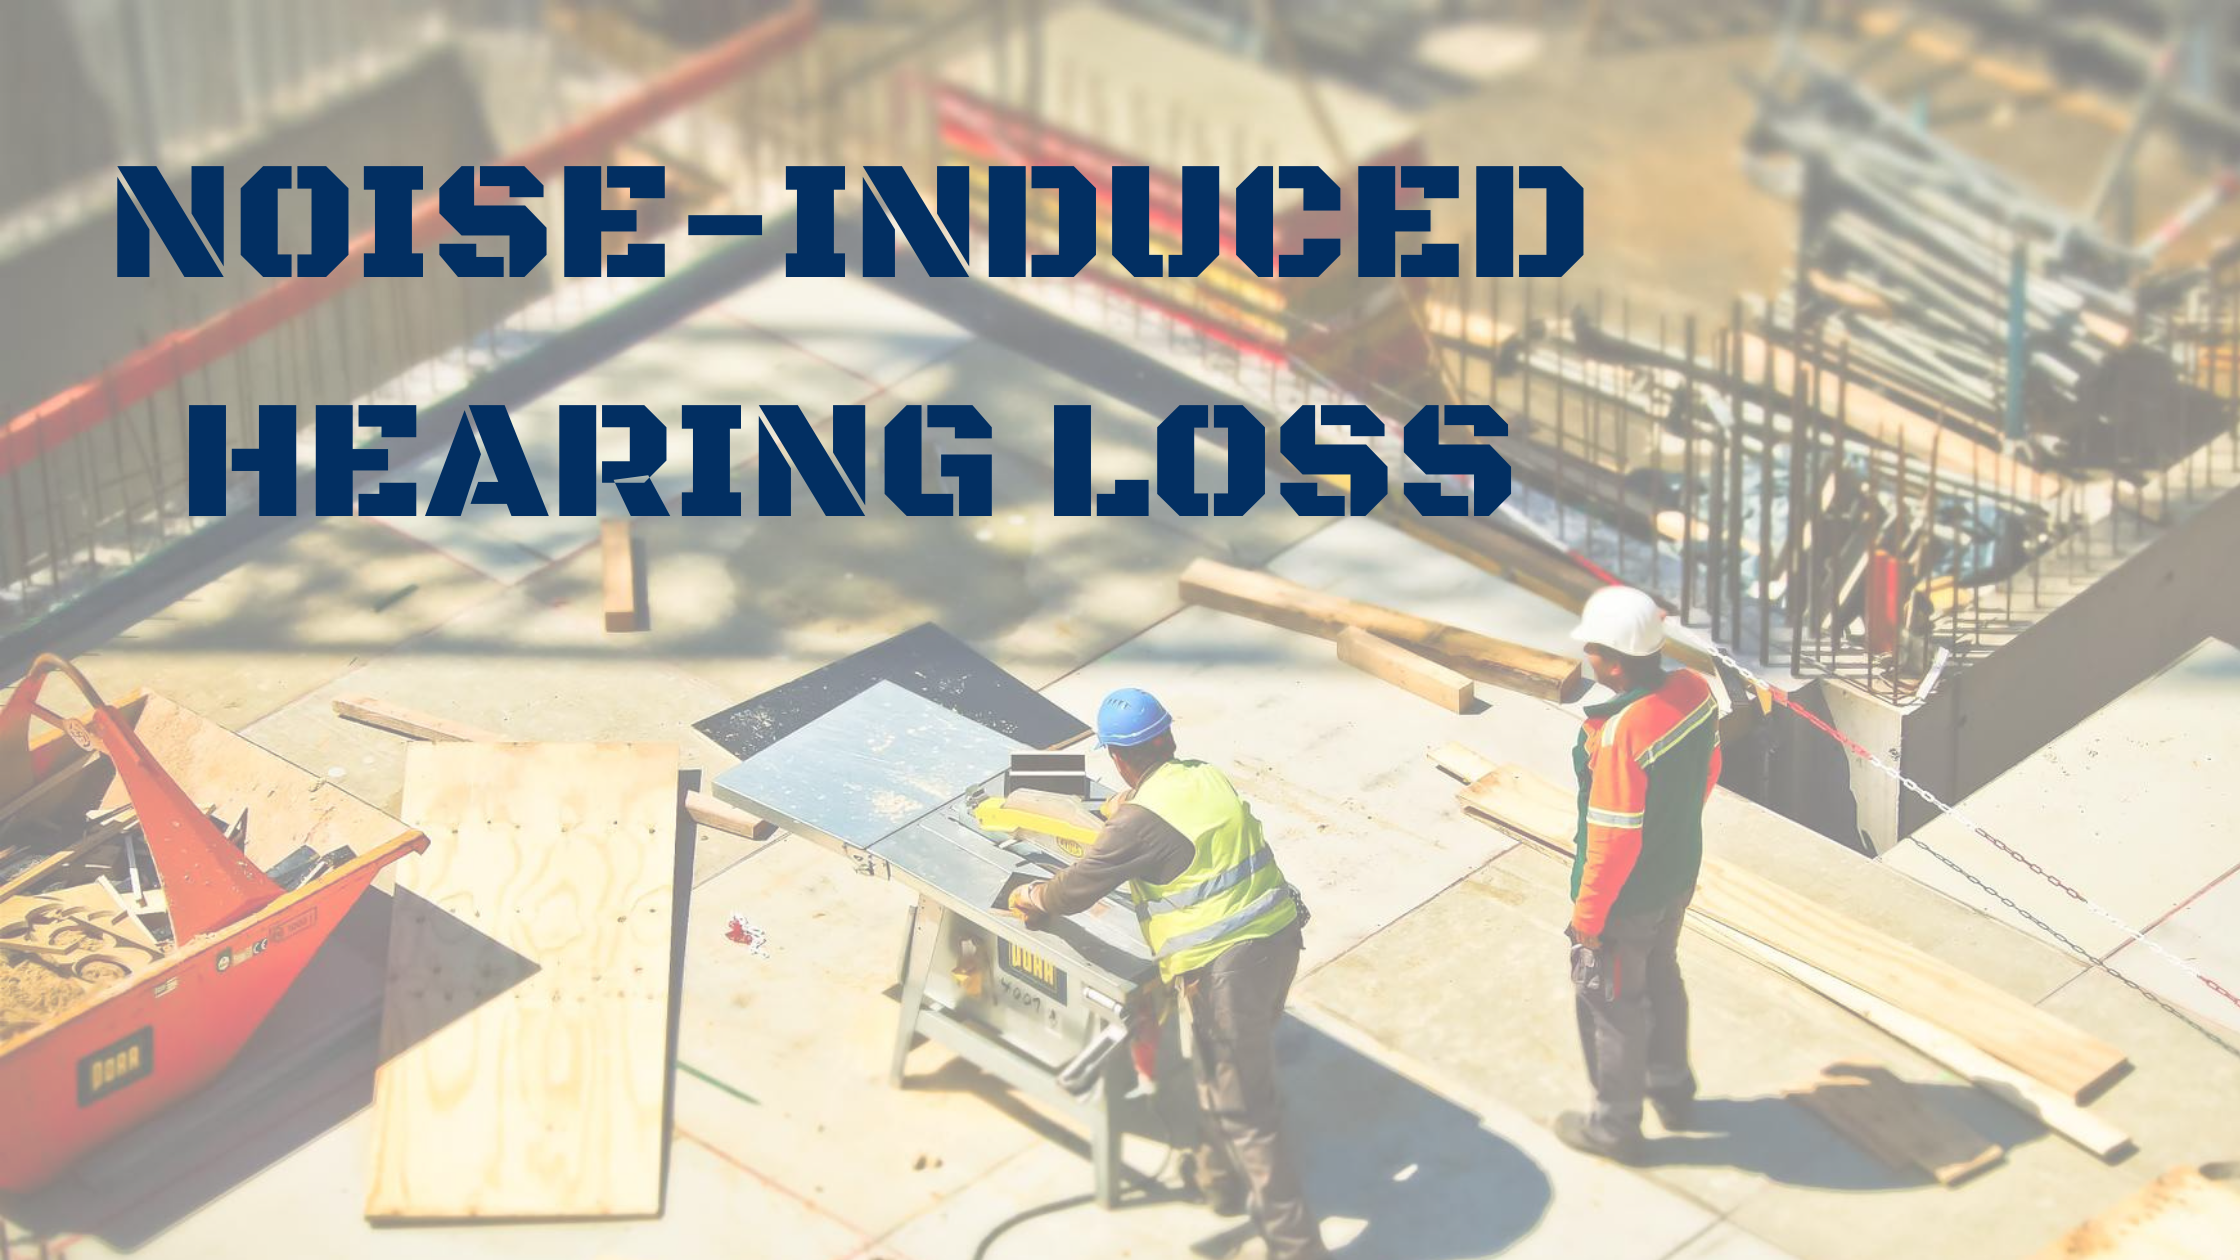 Top 7 Occupations Susceptible to Noise-Induced Hearing Loss